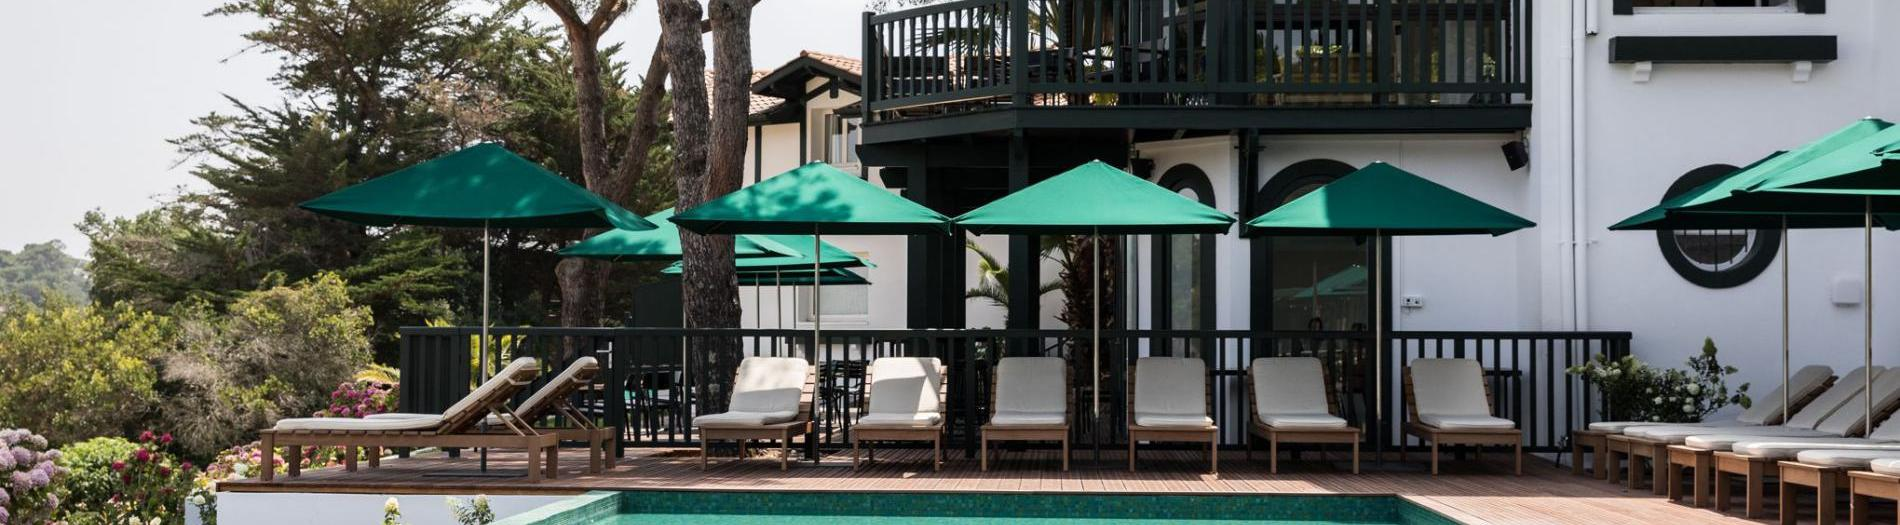 Our references: Beach and terrace layout in luxuries hotels in the world